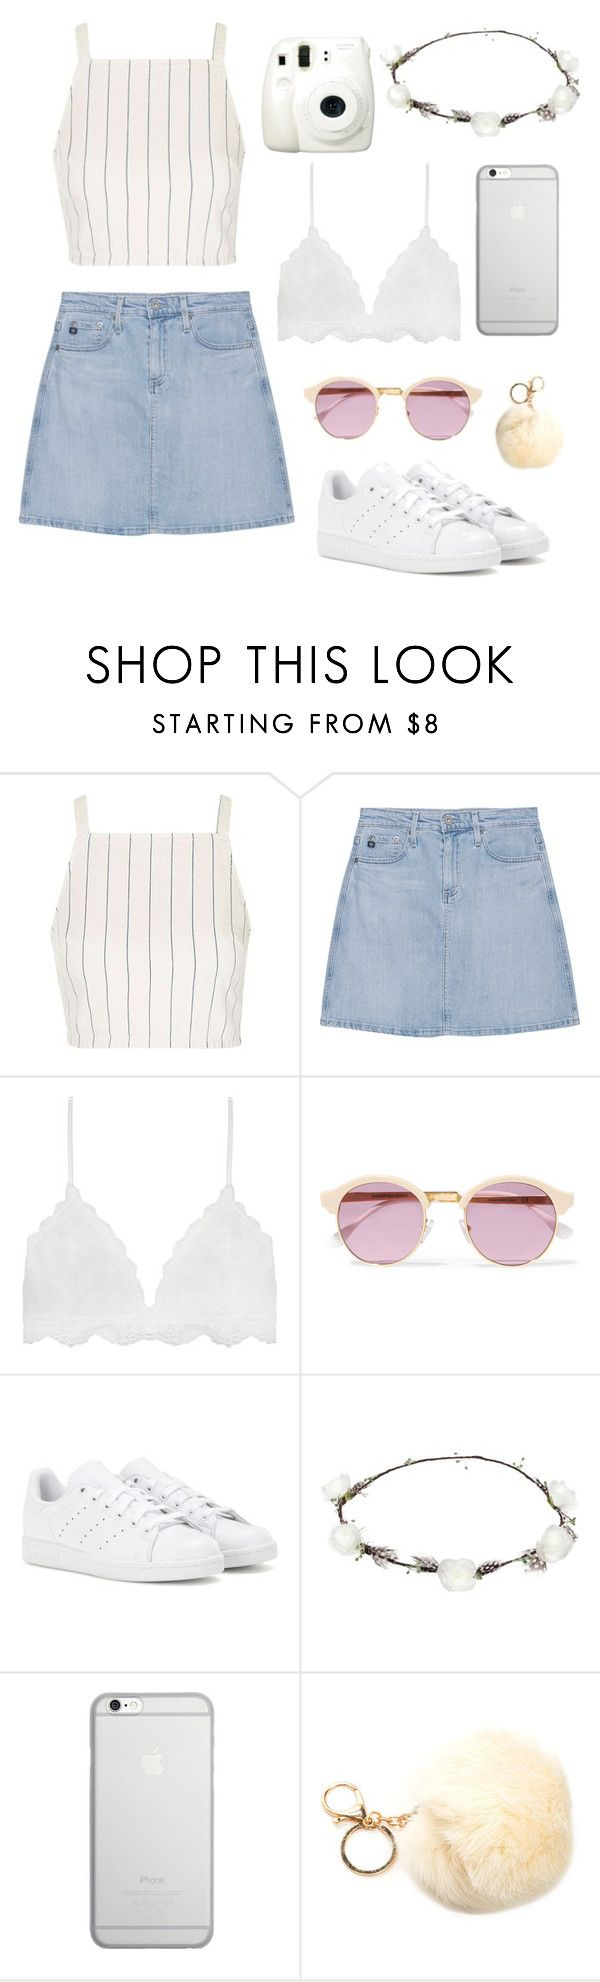 """""""classy"""" by josefiinazzz ❤ liked on Polyvore featuring Topshop, Fuji, AG Adriano Goldschmied, Sheriff&Cherry, adidas, Lipsy and Native Union"""